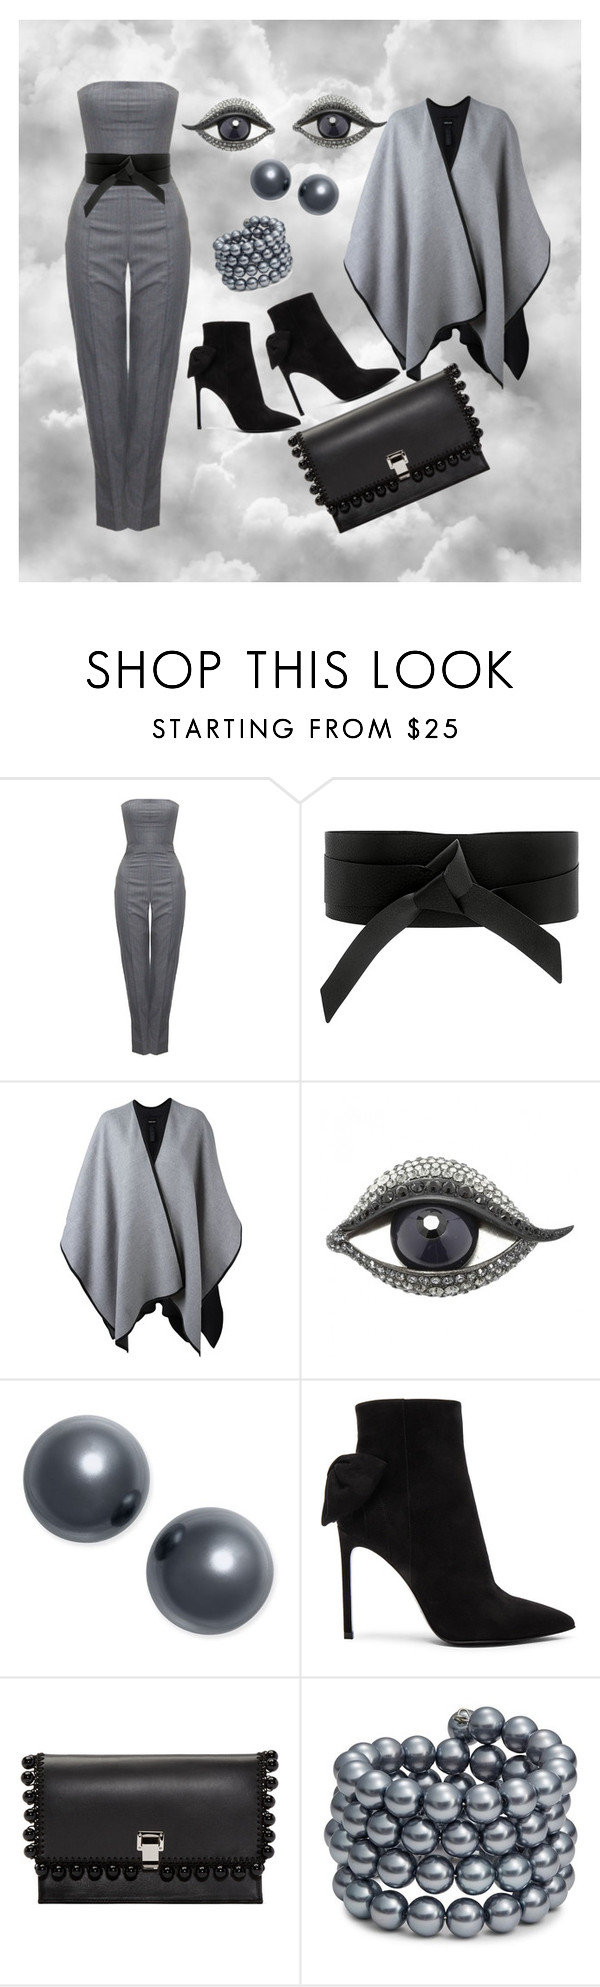 """""""A walk through the clouds"""" by ellenfischerbeauty ❤ liked on Polyvore featuring Alexander McQueen, IRO, Giorgio Armani, Lanvin, Charter Club, Yves Saint Laurent, Proenza Schouler, Kenneth Jay Lane, Givenchy and saintlaurent"""